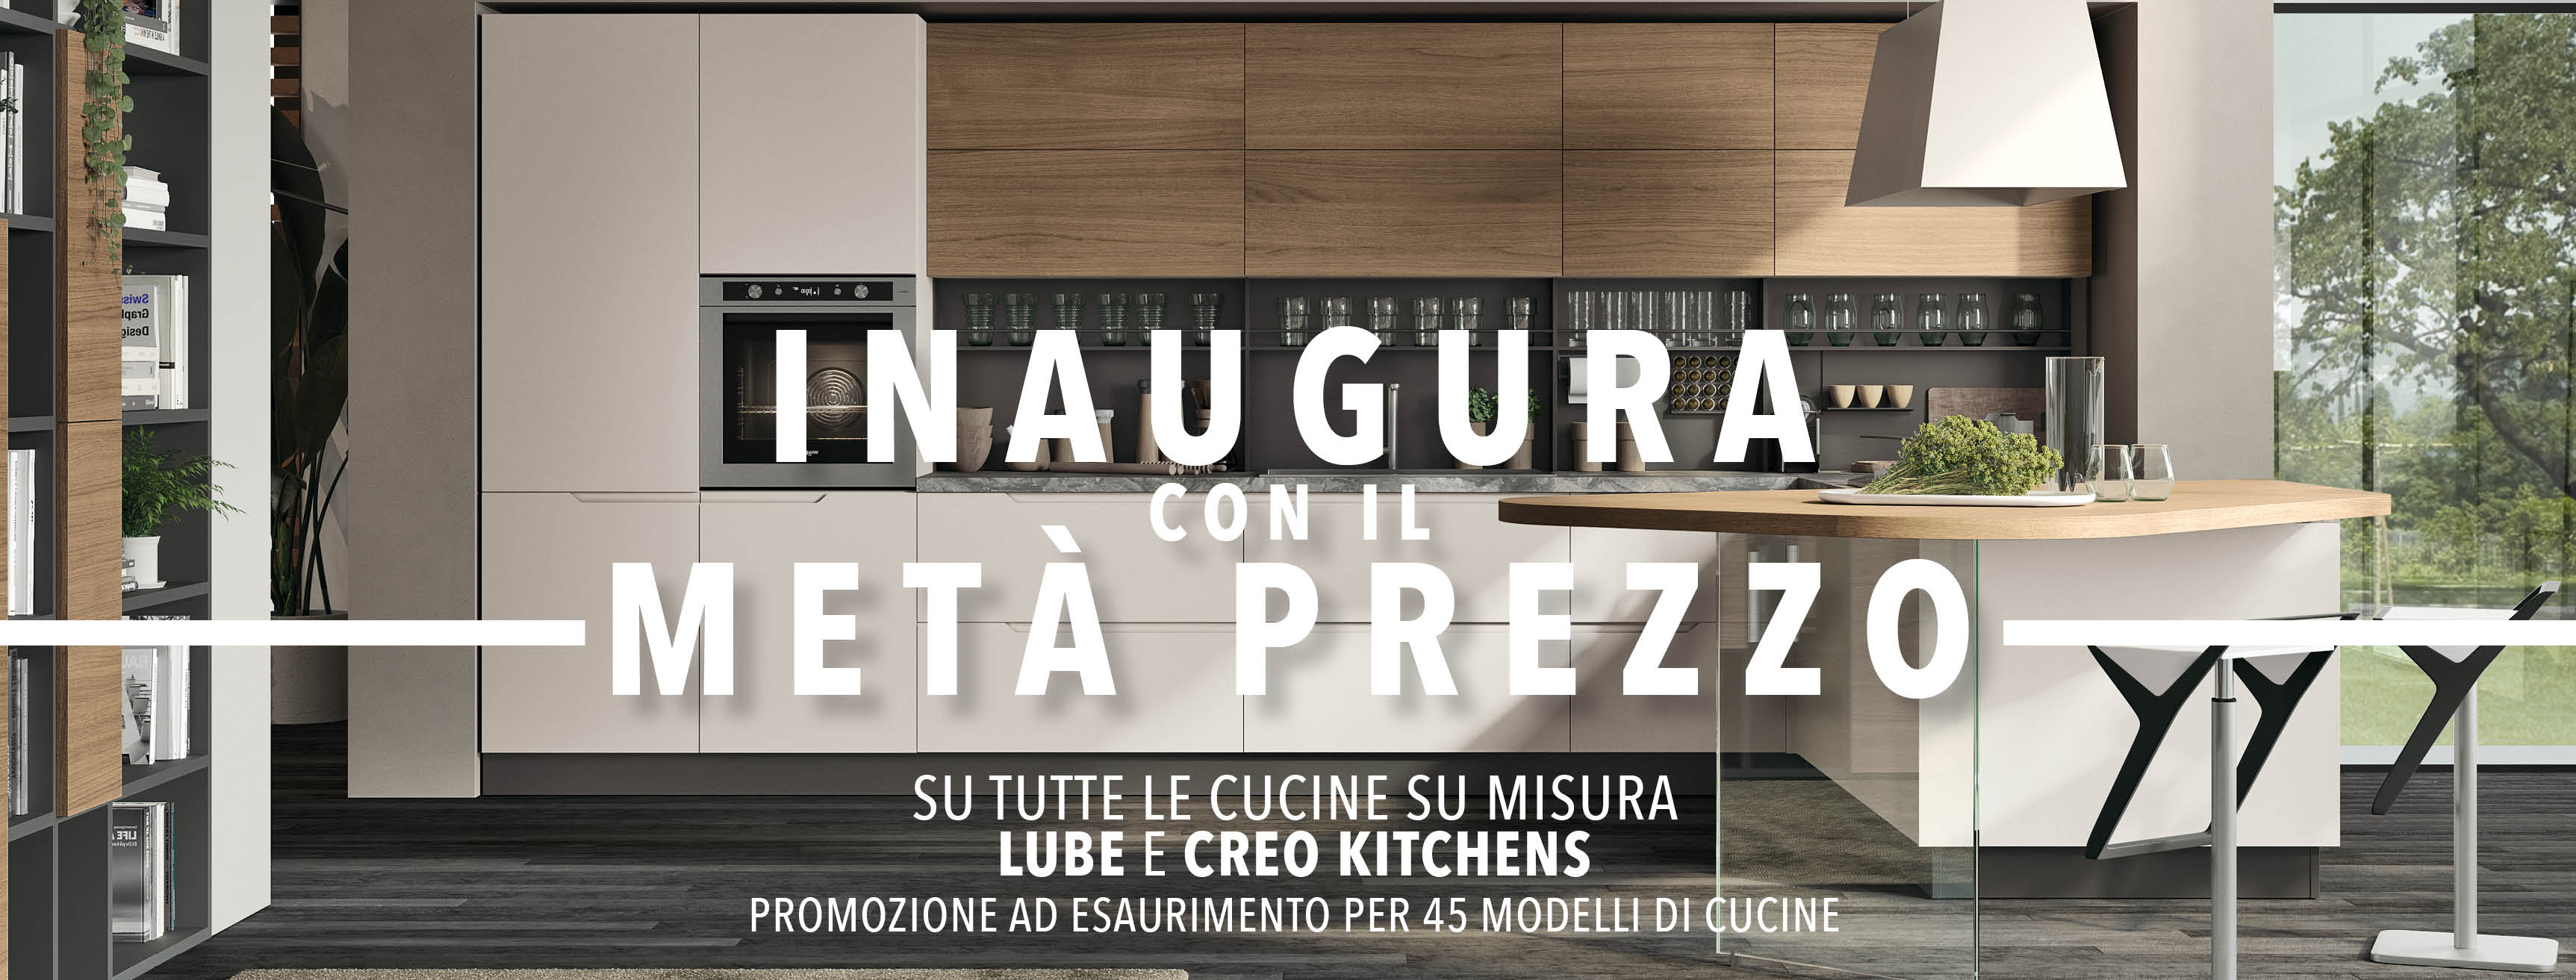 Lube cucine verona great new sales outlet for the cucine lube and creo kitchens brand in verona - Lube cucine conegliano ...